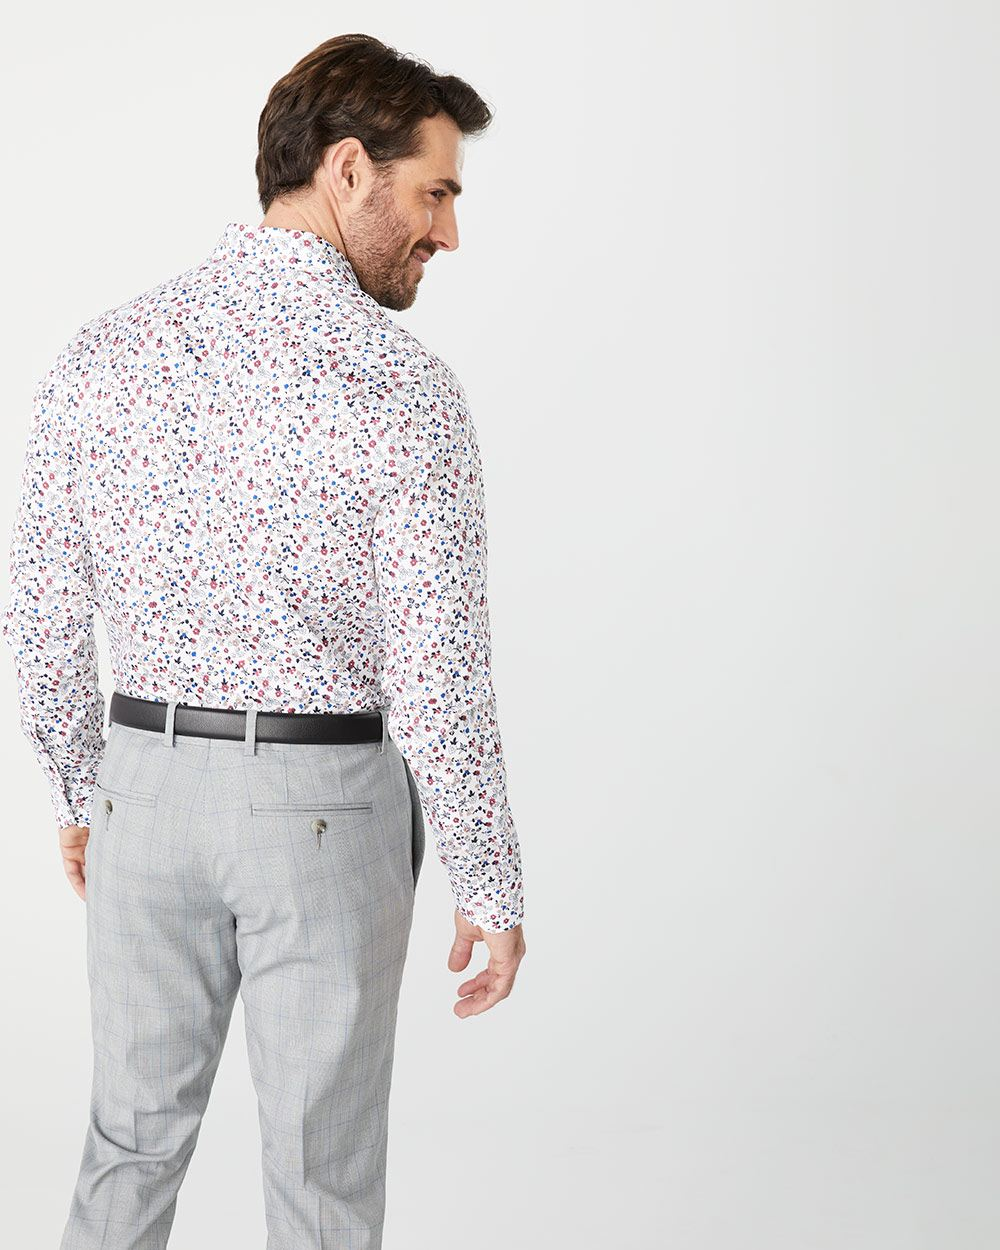 Tailored Fit small floral dress shirt